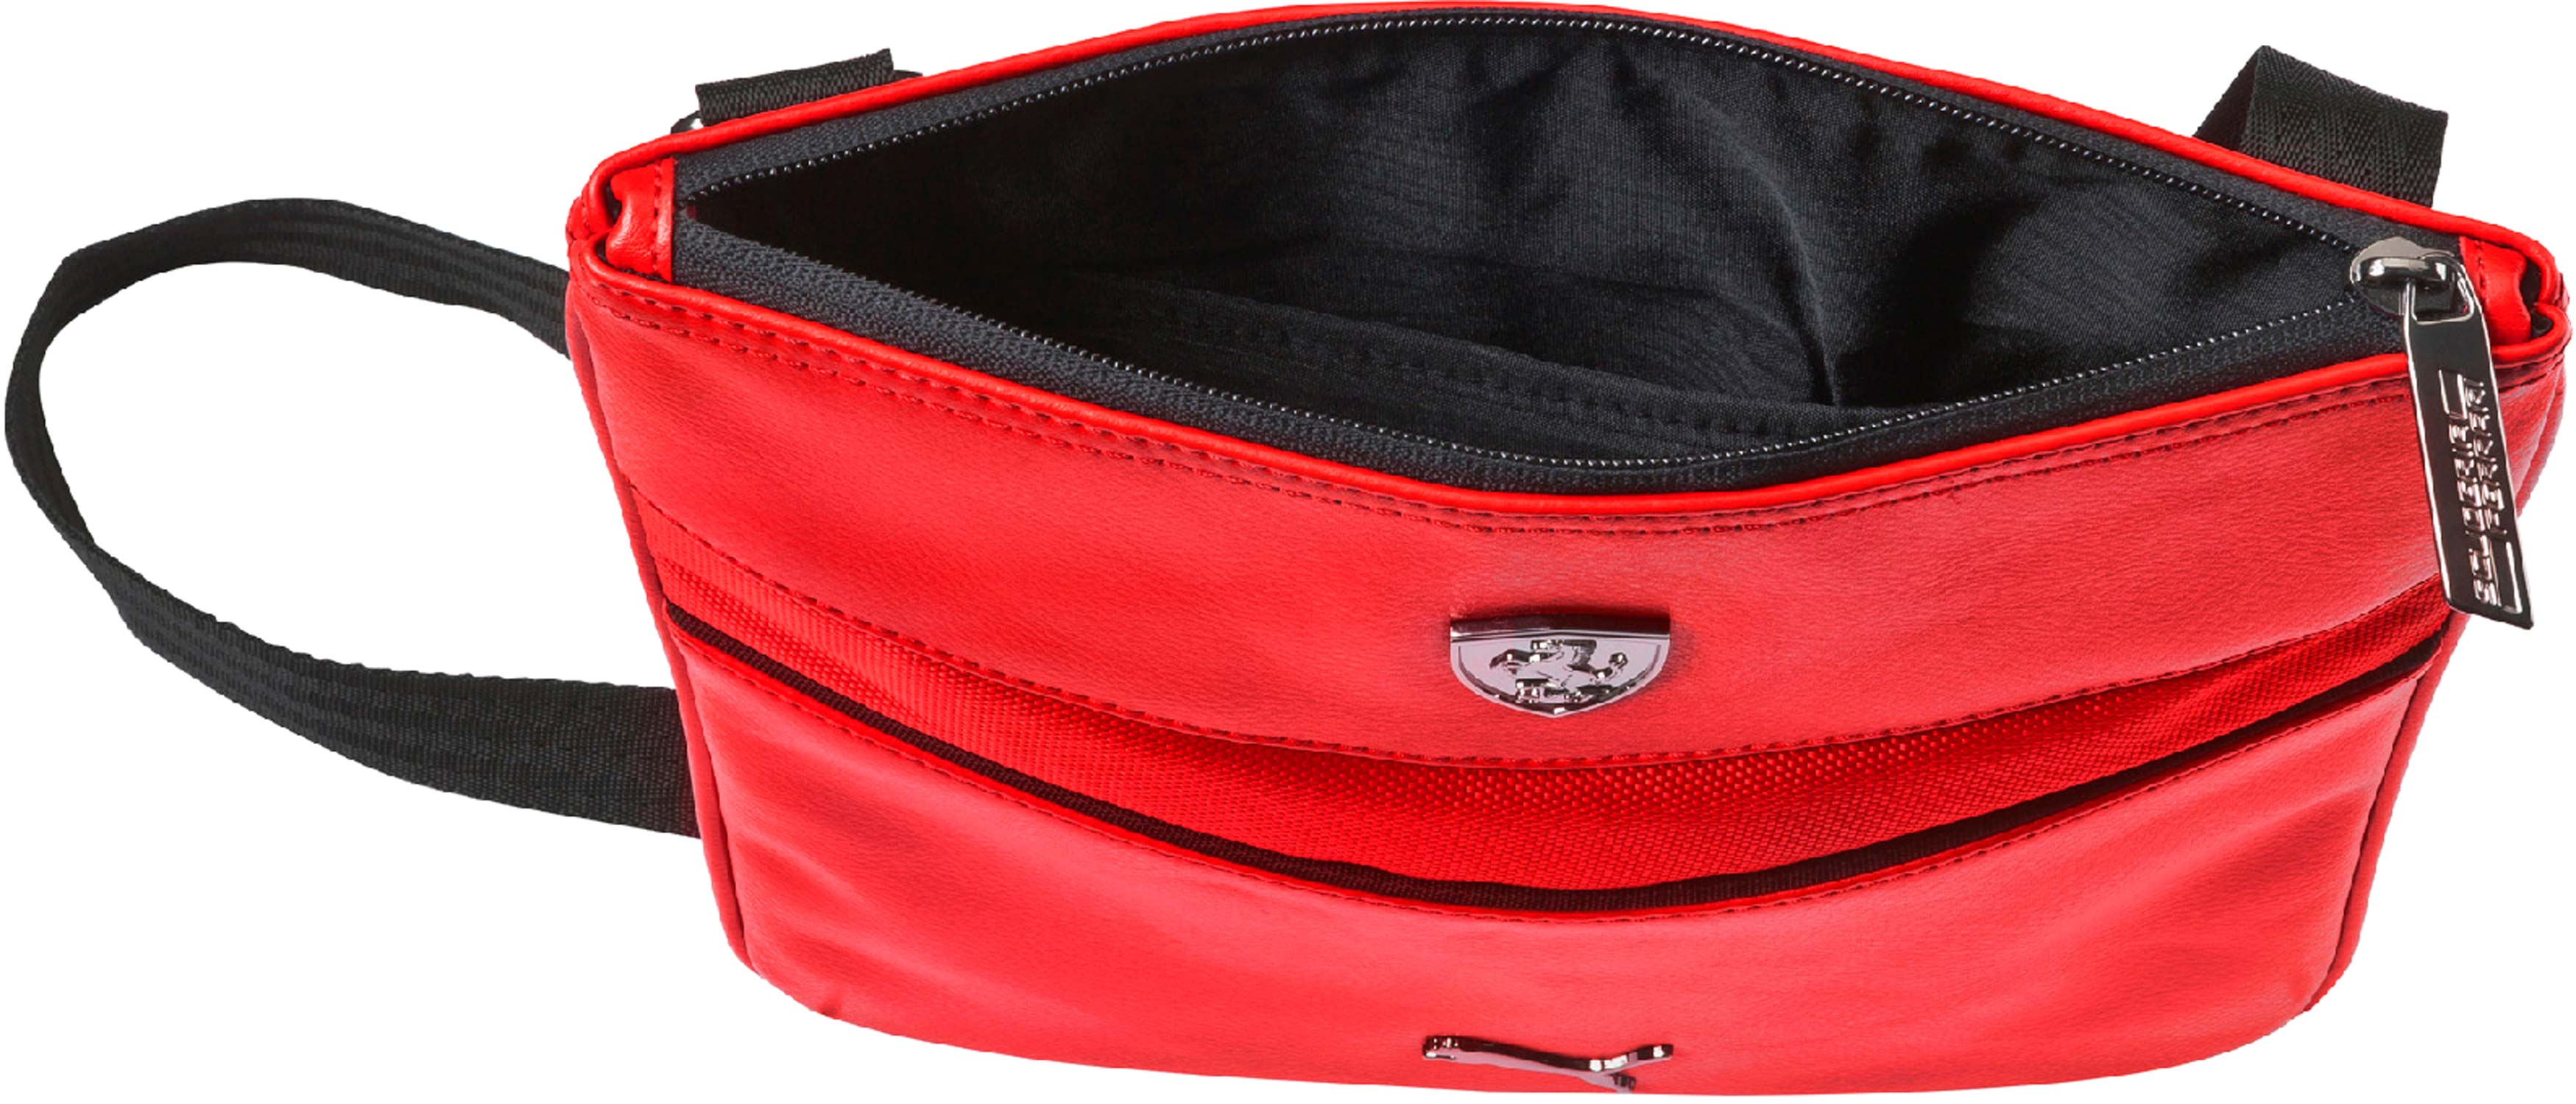 Perfect Puma Ferrari Ls Handbag Sportisimo Com